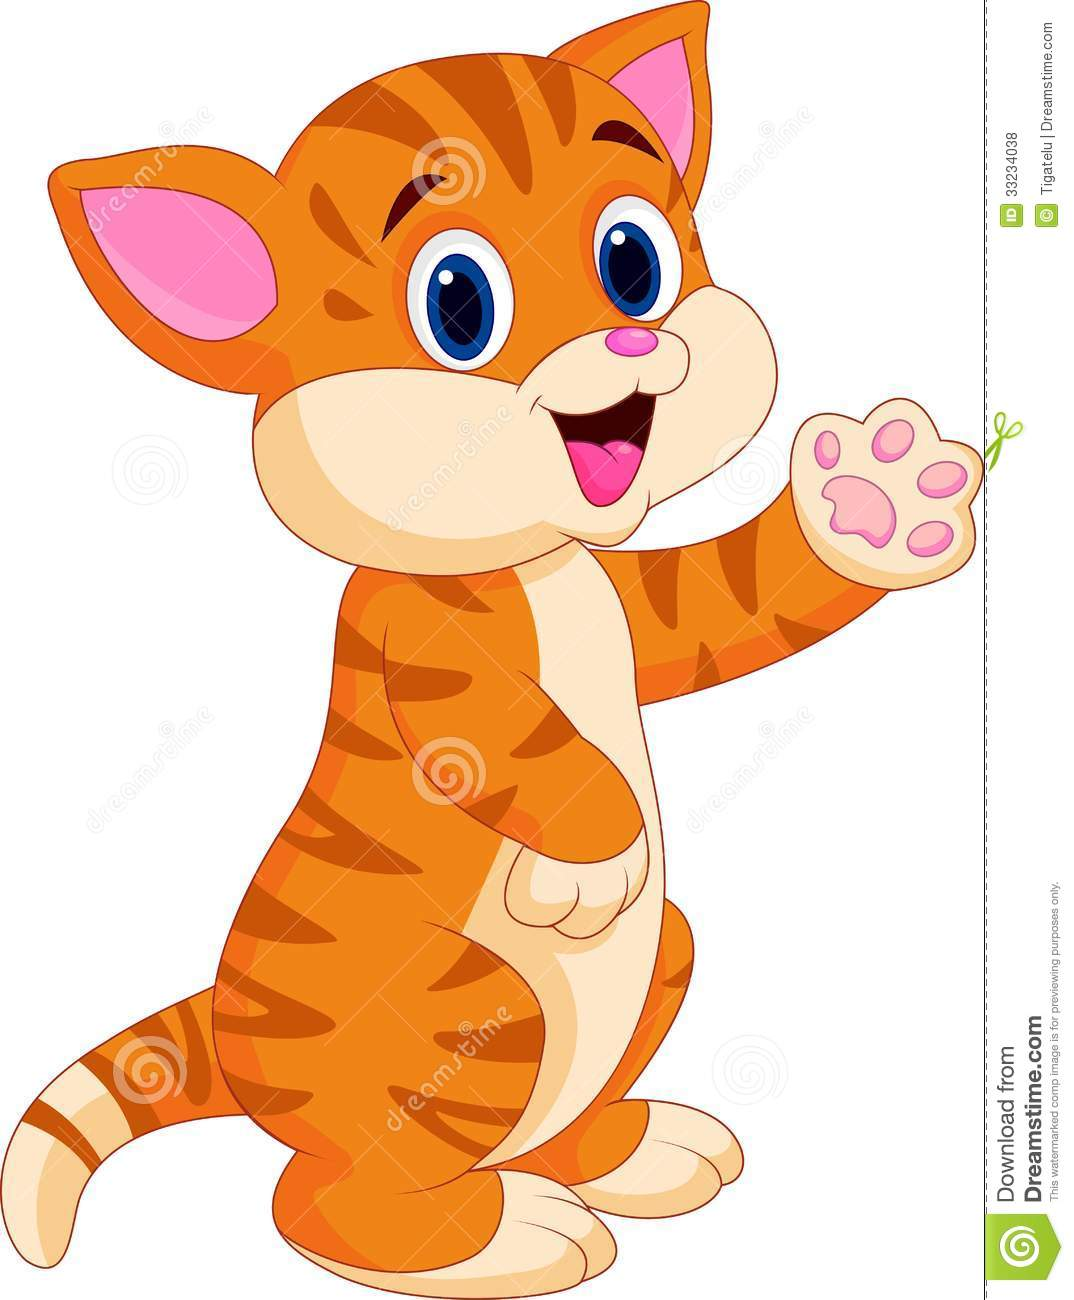 Cute Baby Cat Cartoon Royalty Free Stock s Image